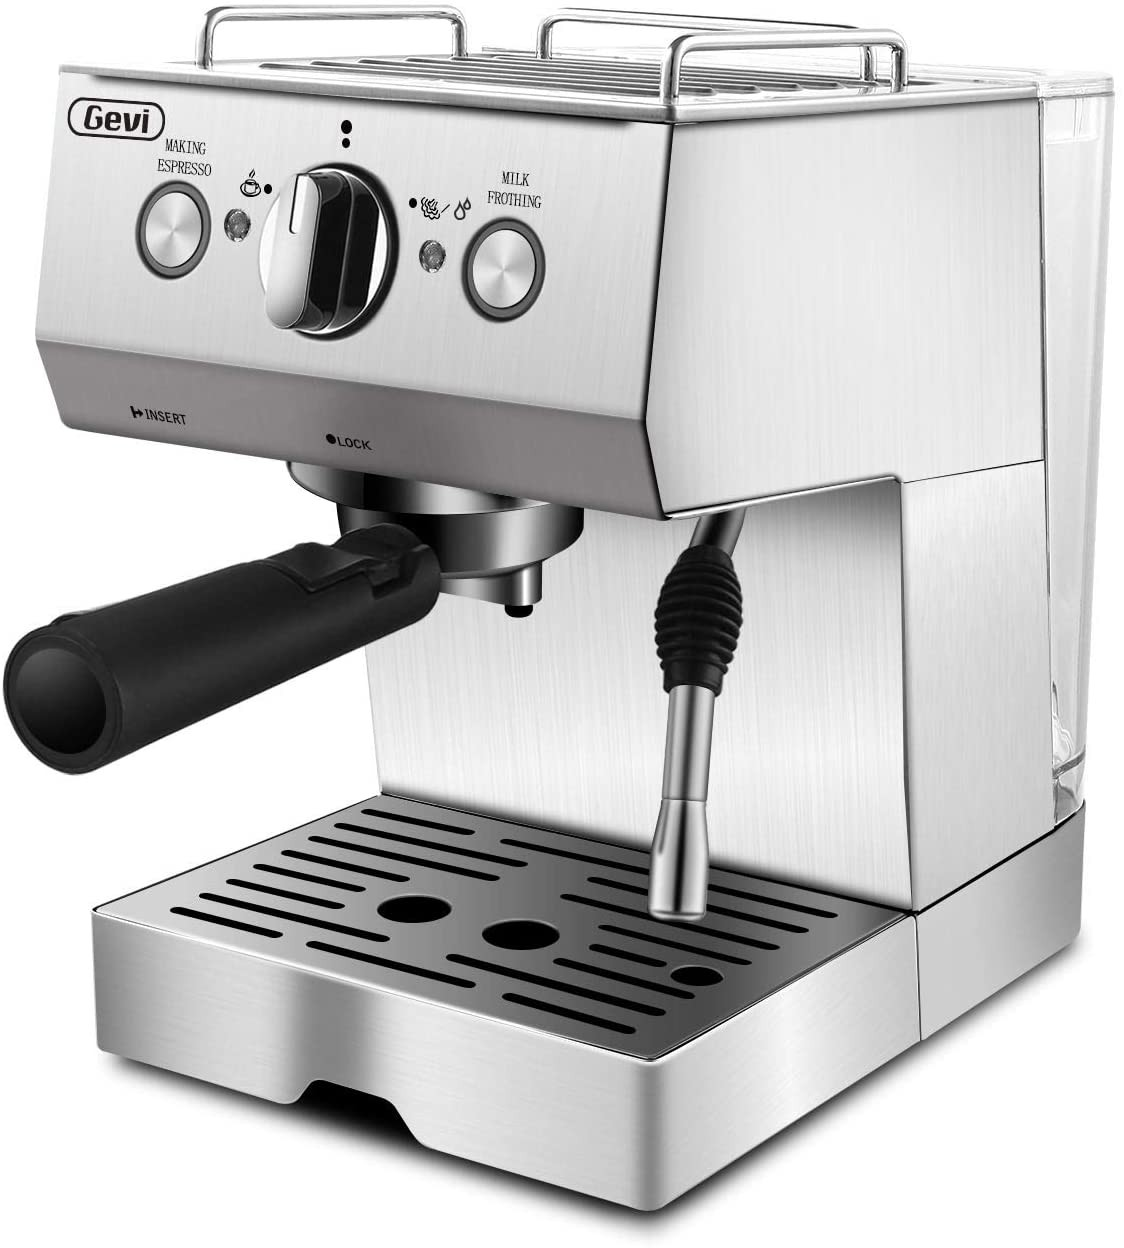 Espresso Machines 15 Bar Coffee Machine with Milk Frother Wand for Espresso, Cappuccino, Latte